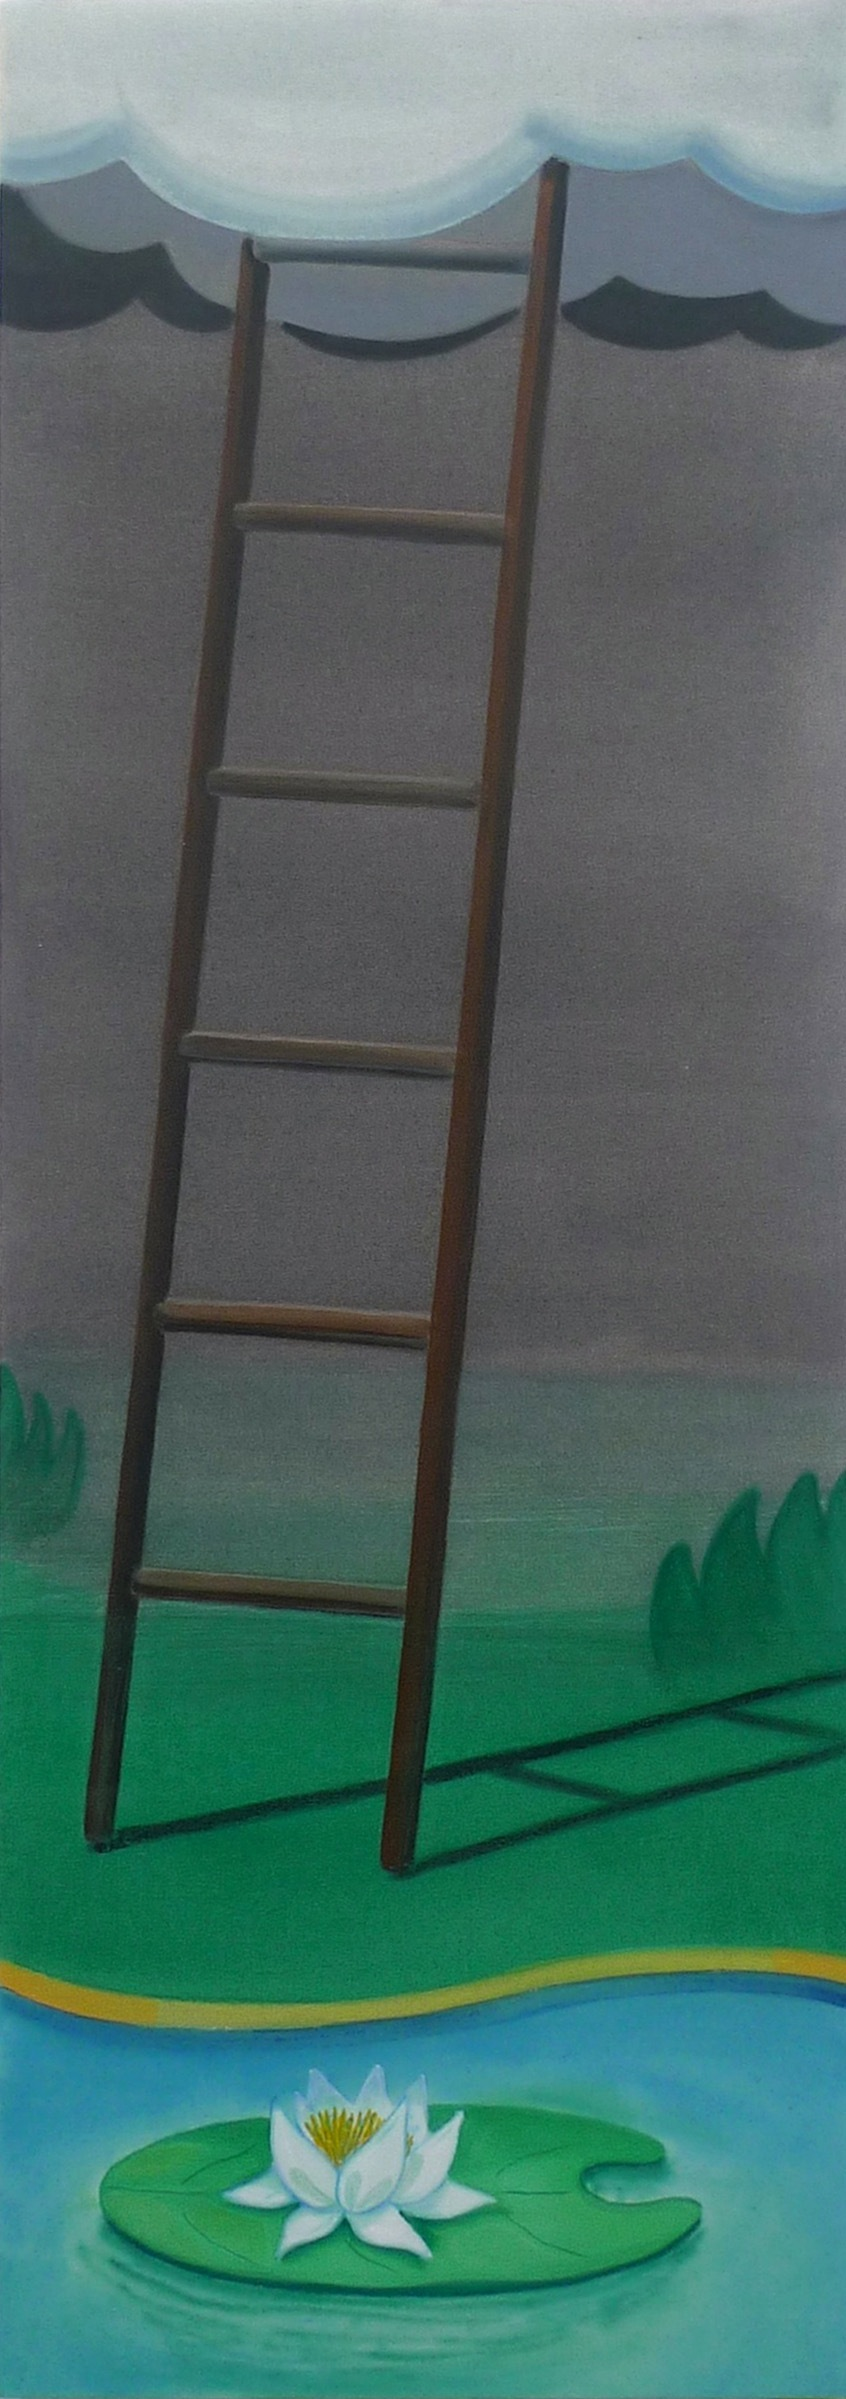 Playground for Dreamers  2015 Acrylic on Canvas, 175 x 62 cm